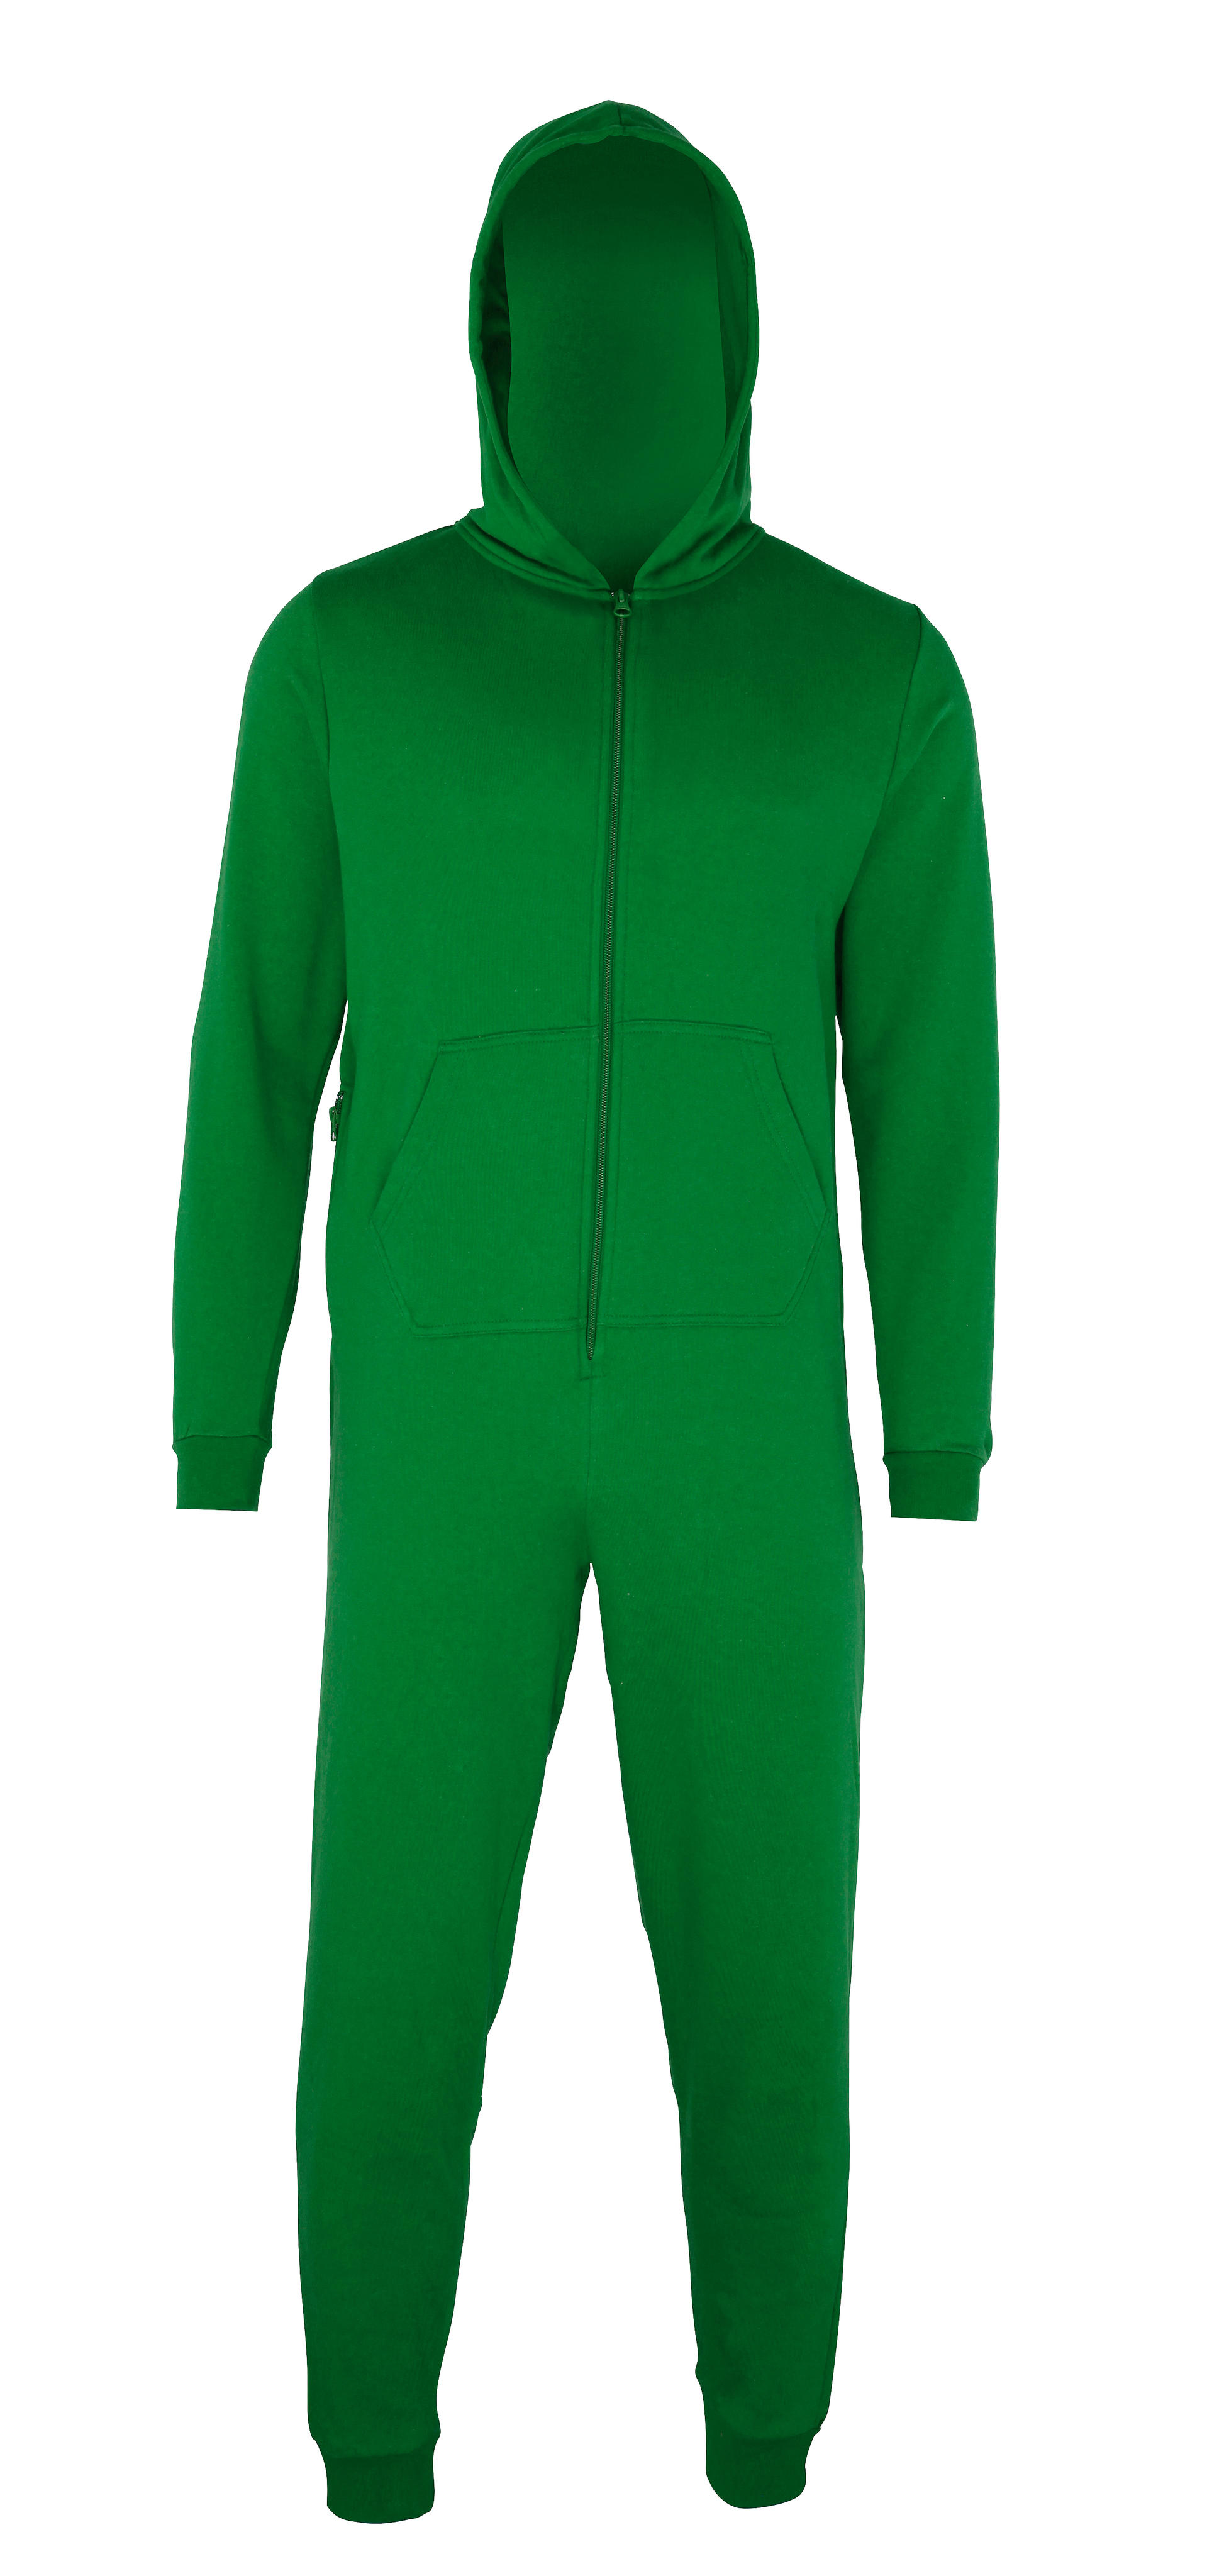 Onesie Lounge Suits